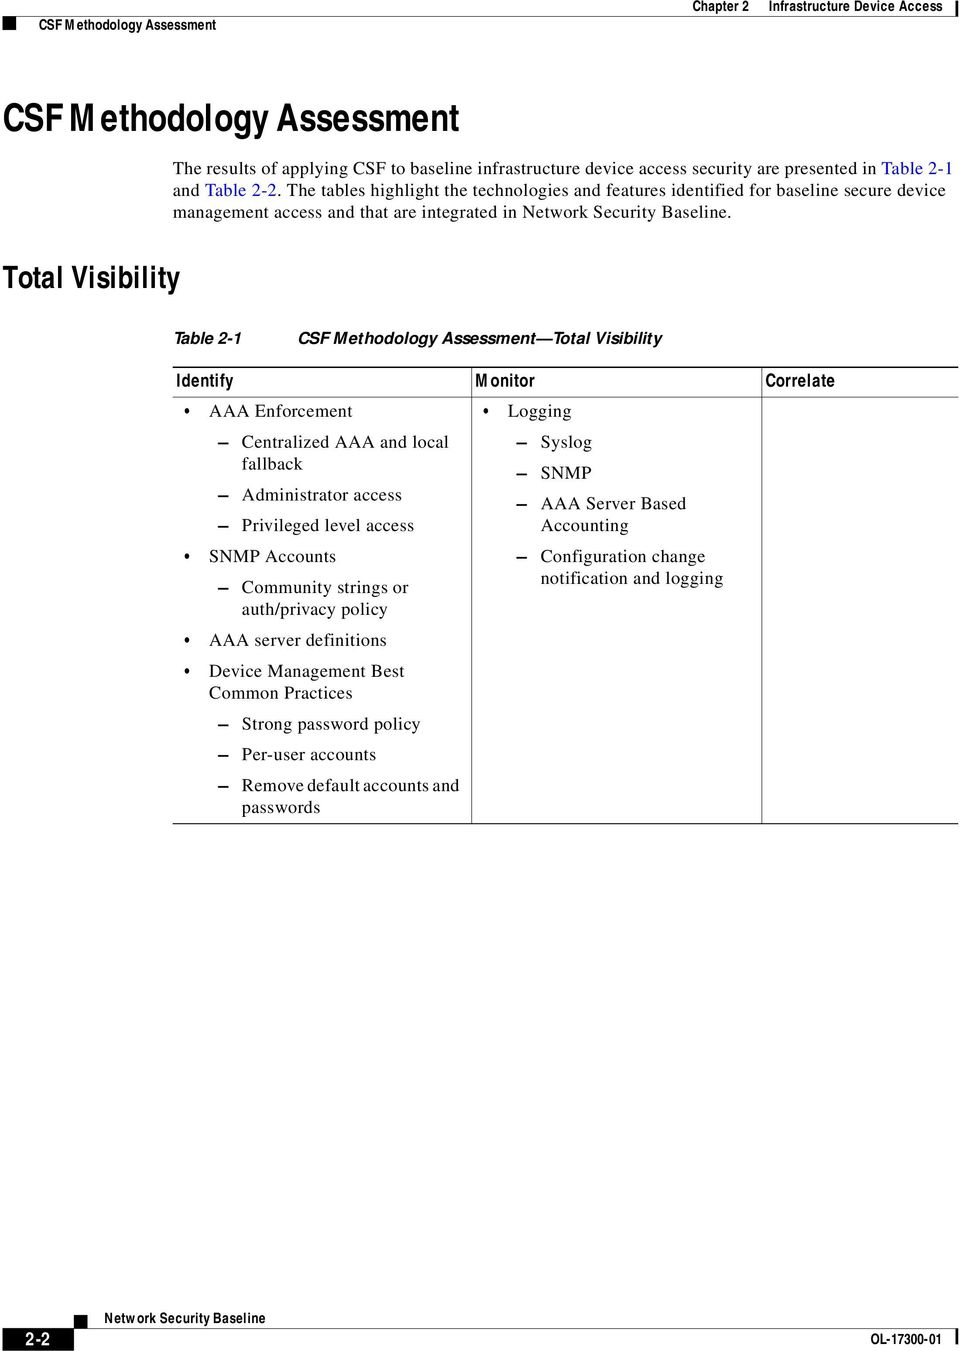 Total Visibility Table 2-1 CSF Methodology Assessment Total Visibility Identify Monitor Correlate AAA Enforcement Logging Centralized AAA and local fallback Administrator access Privileged level